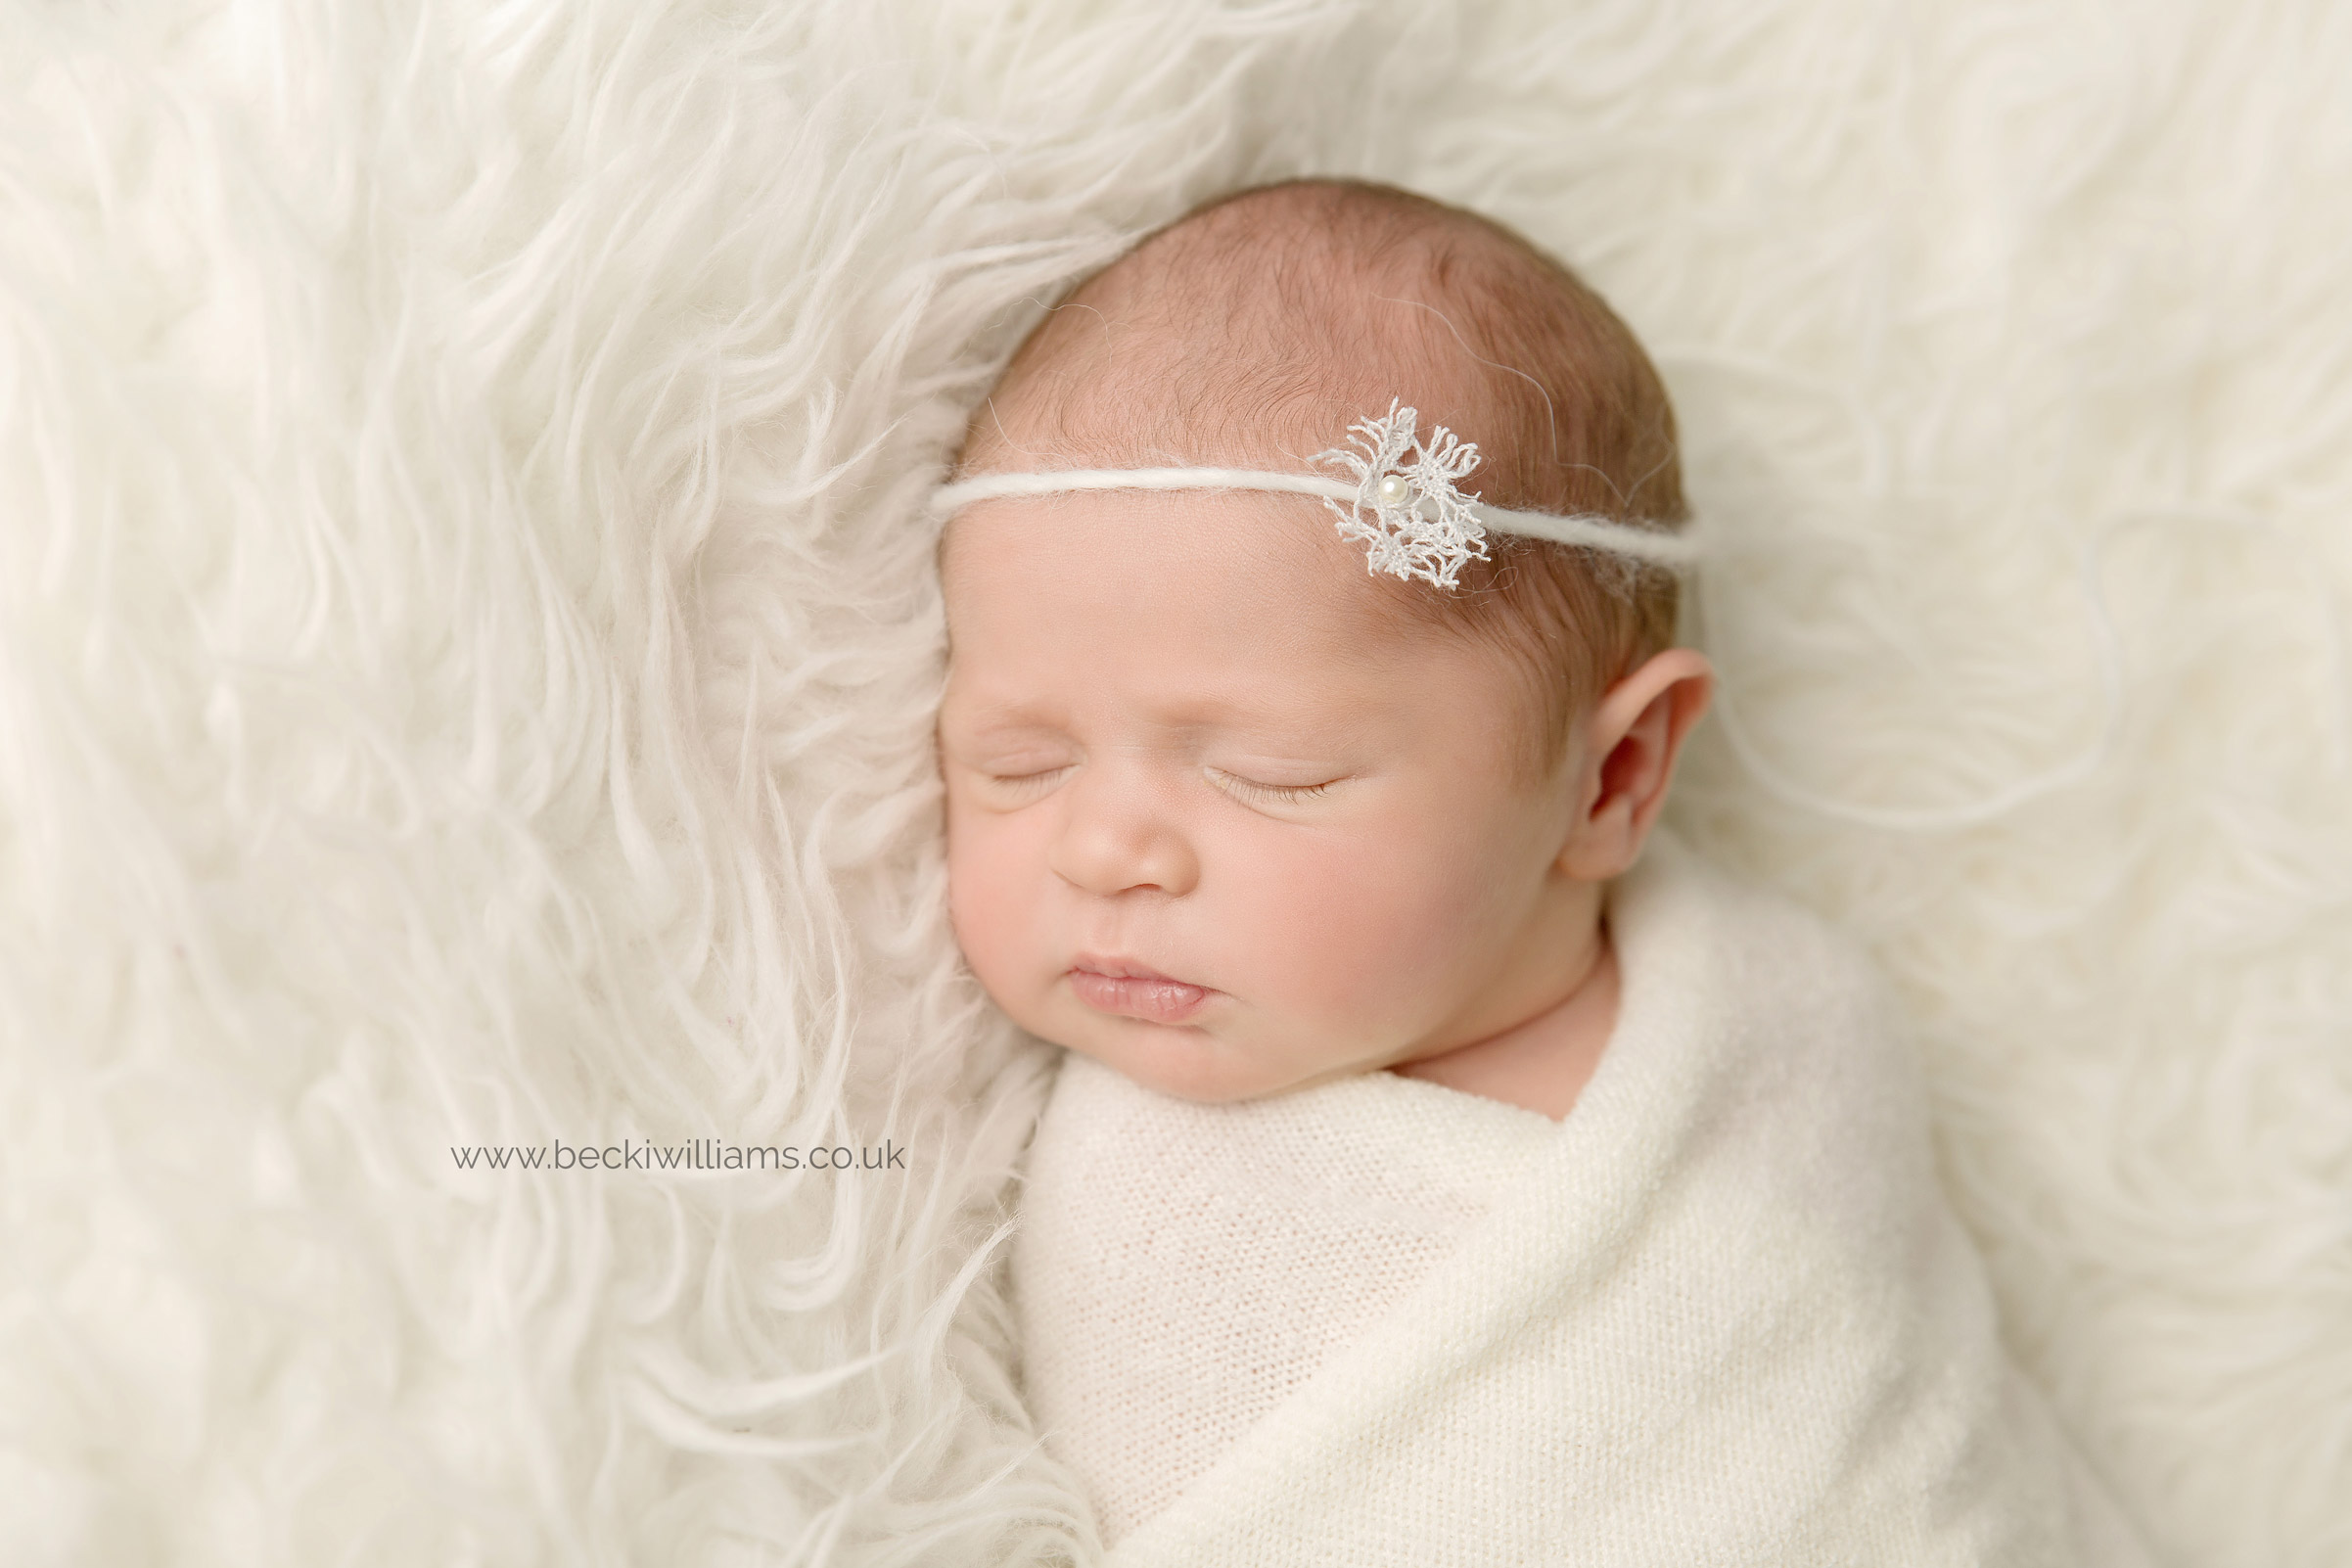 newborn-photo-shoot-hemel-hempstead-snowflake-neutral-asleep.jpg